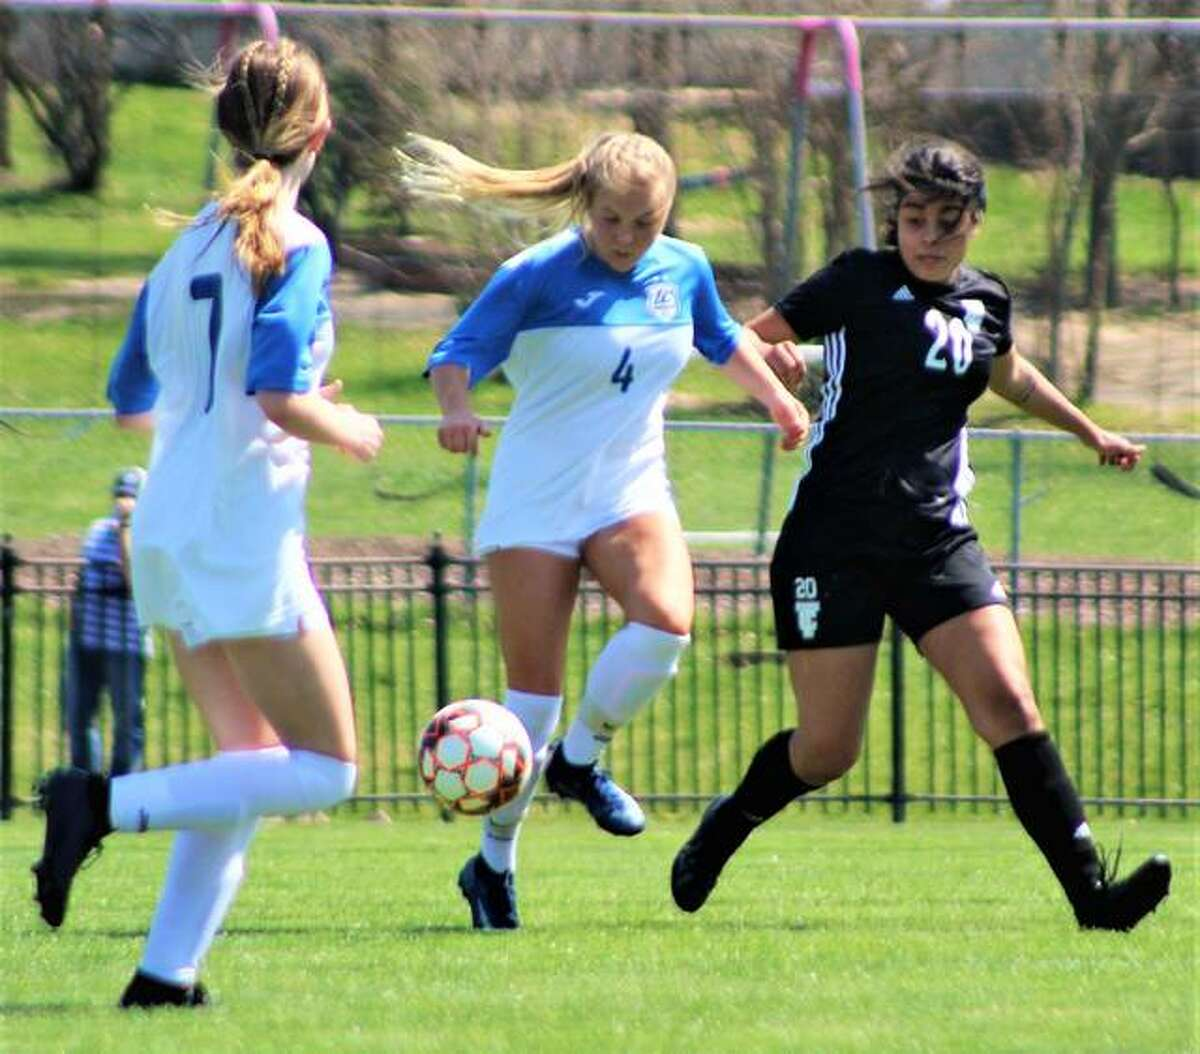 Skylar Hollingshead of LCCC (4) settles the ball Saturday against Triton at Tim Rooney Stadium. At left is LCCC's Chelsea Riden.